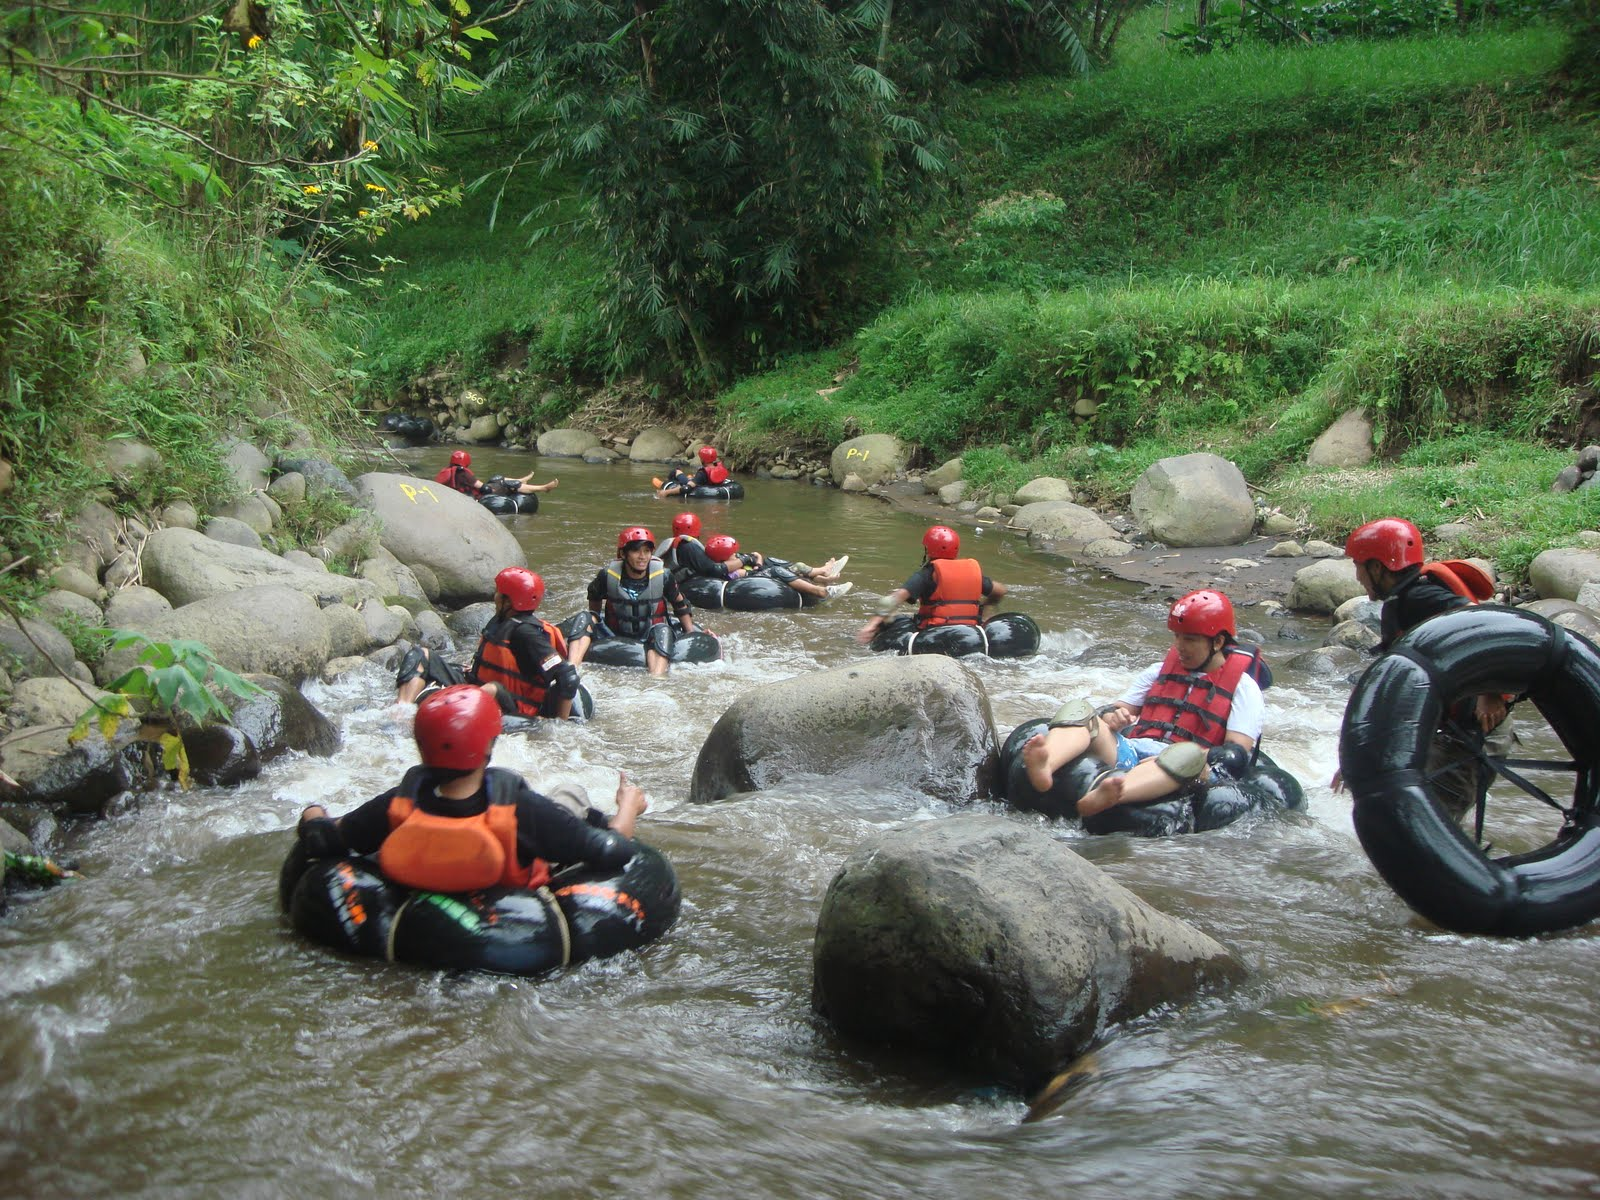 Enjoy fantastic ocean waves and amazing river adventure in Batu Karas